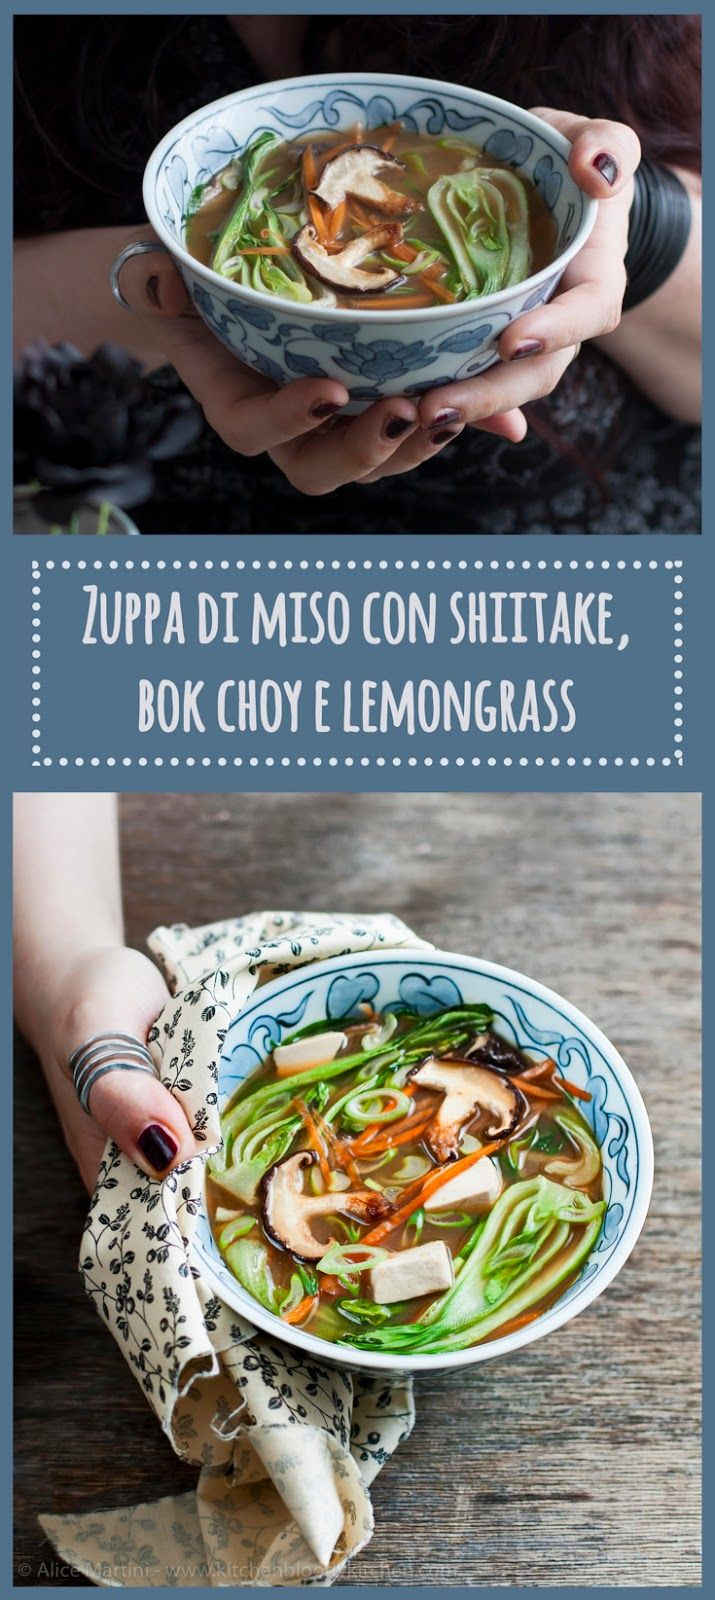 Miso soup with shiitake, bok choy and lemongrass | *Vegan recipe*